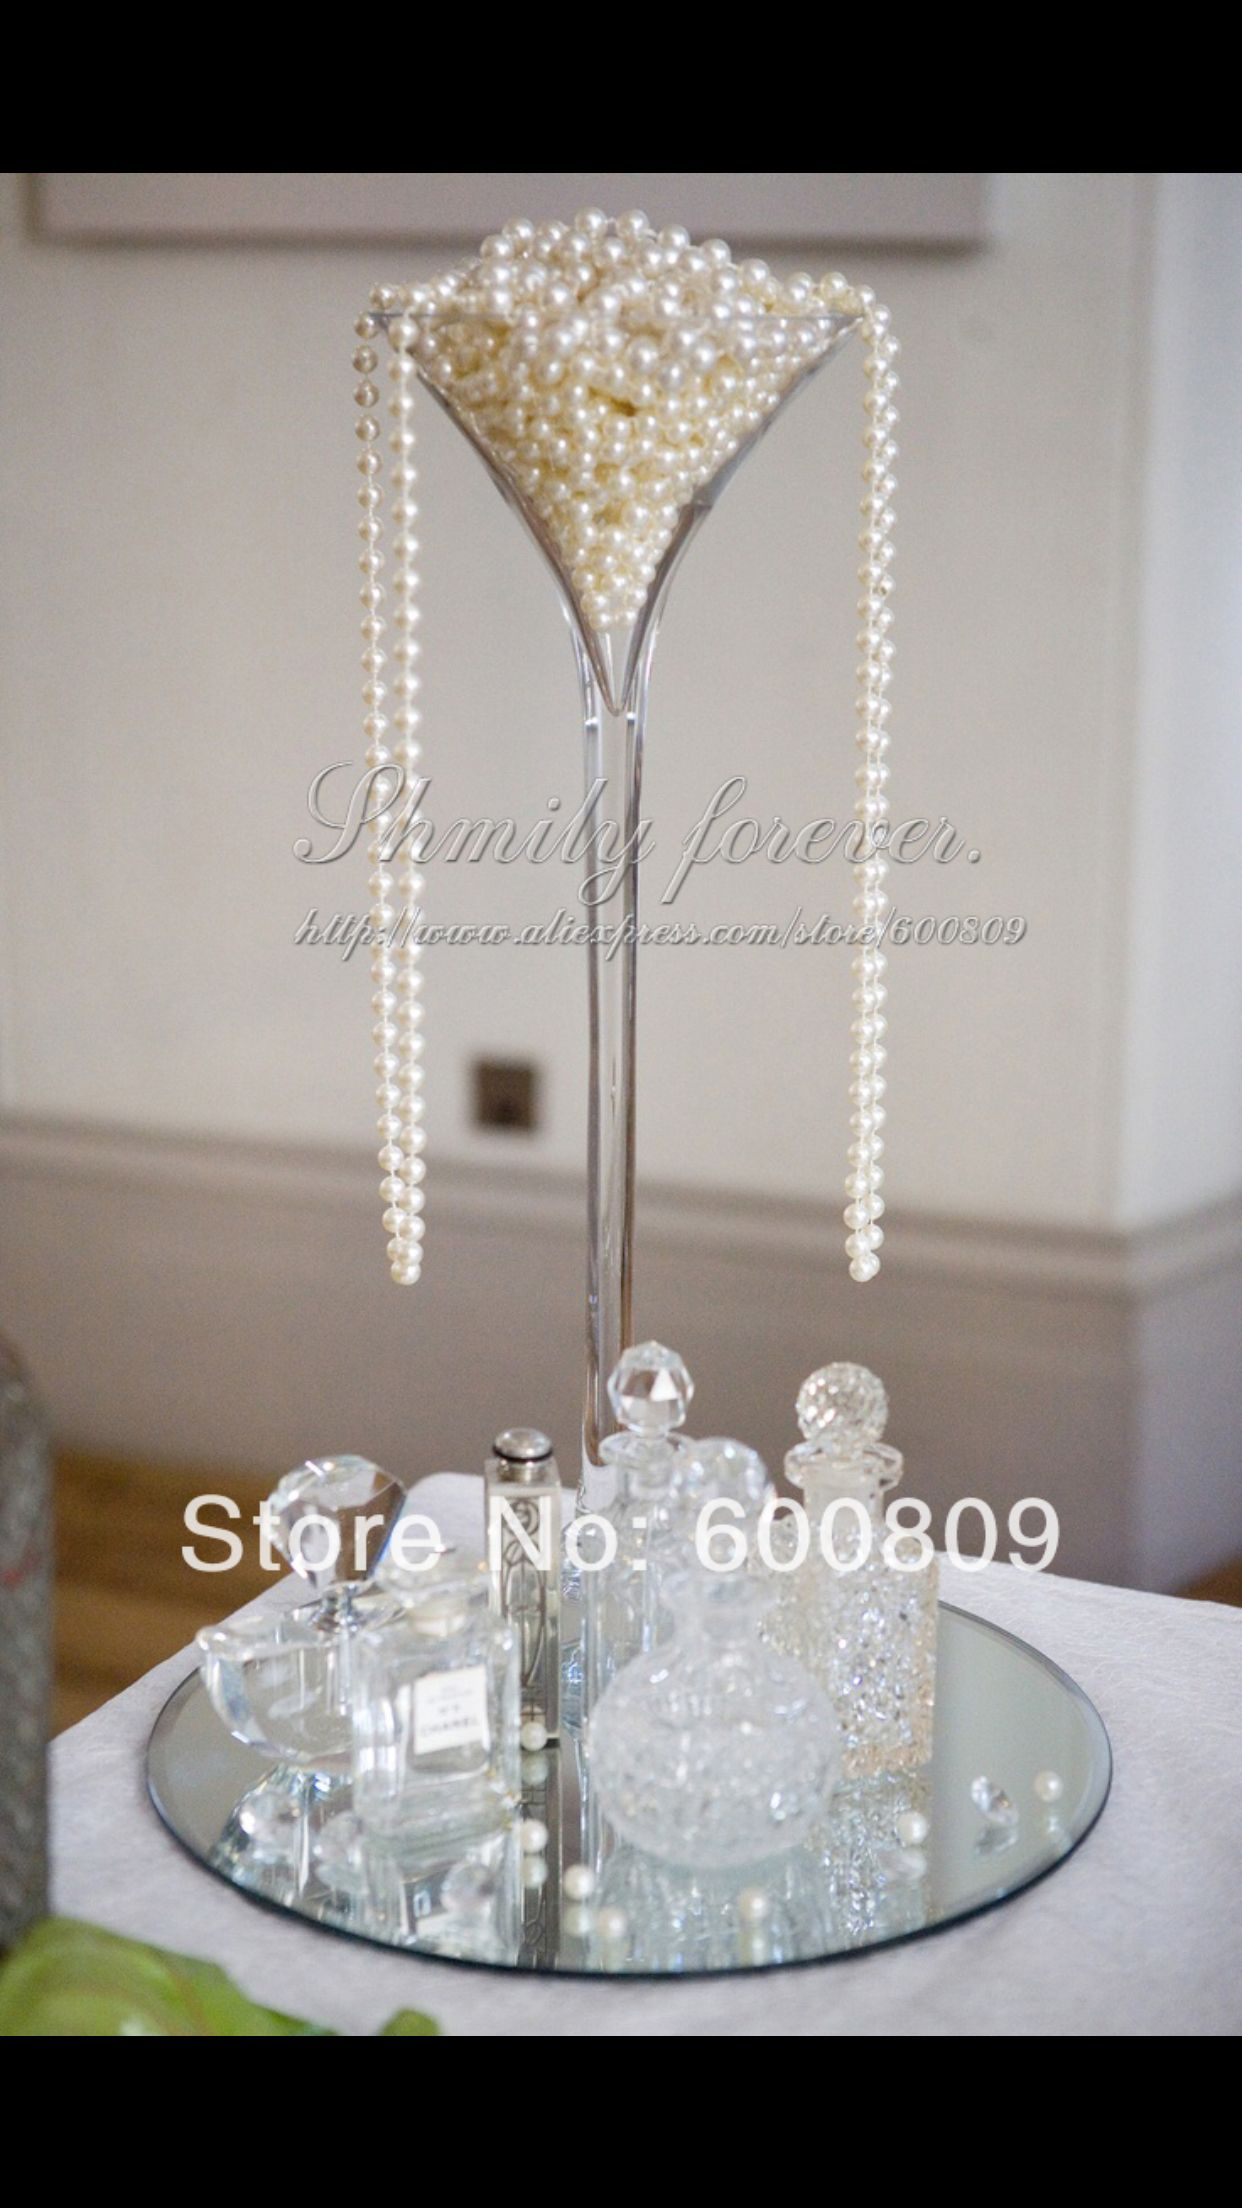 Pin by Carla Reed on Diamonds and Pearls Wedding Theme | Pinterest ...